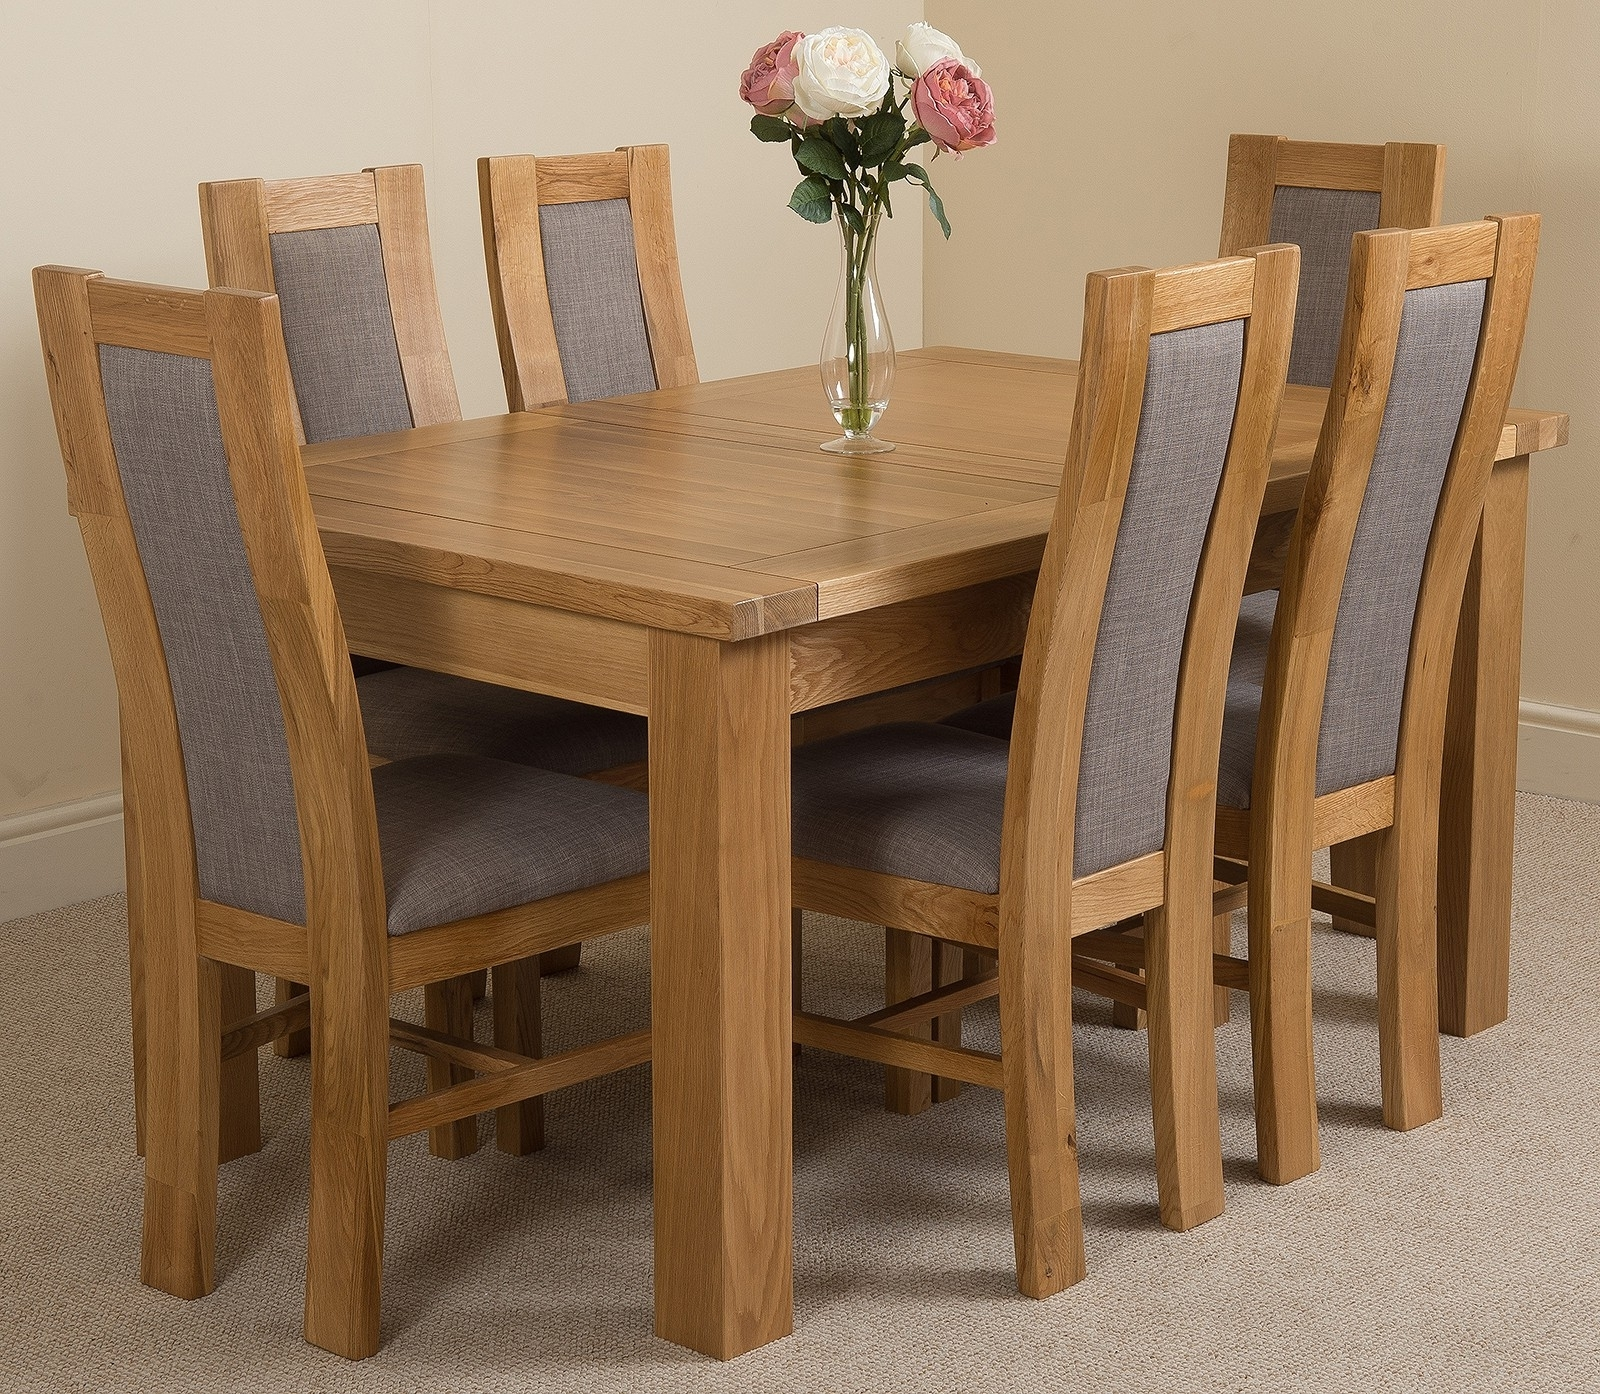 Oak Furniture King Pertaining To Oak Dining Tables (View 21 of 25)